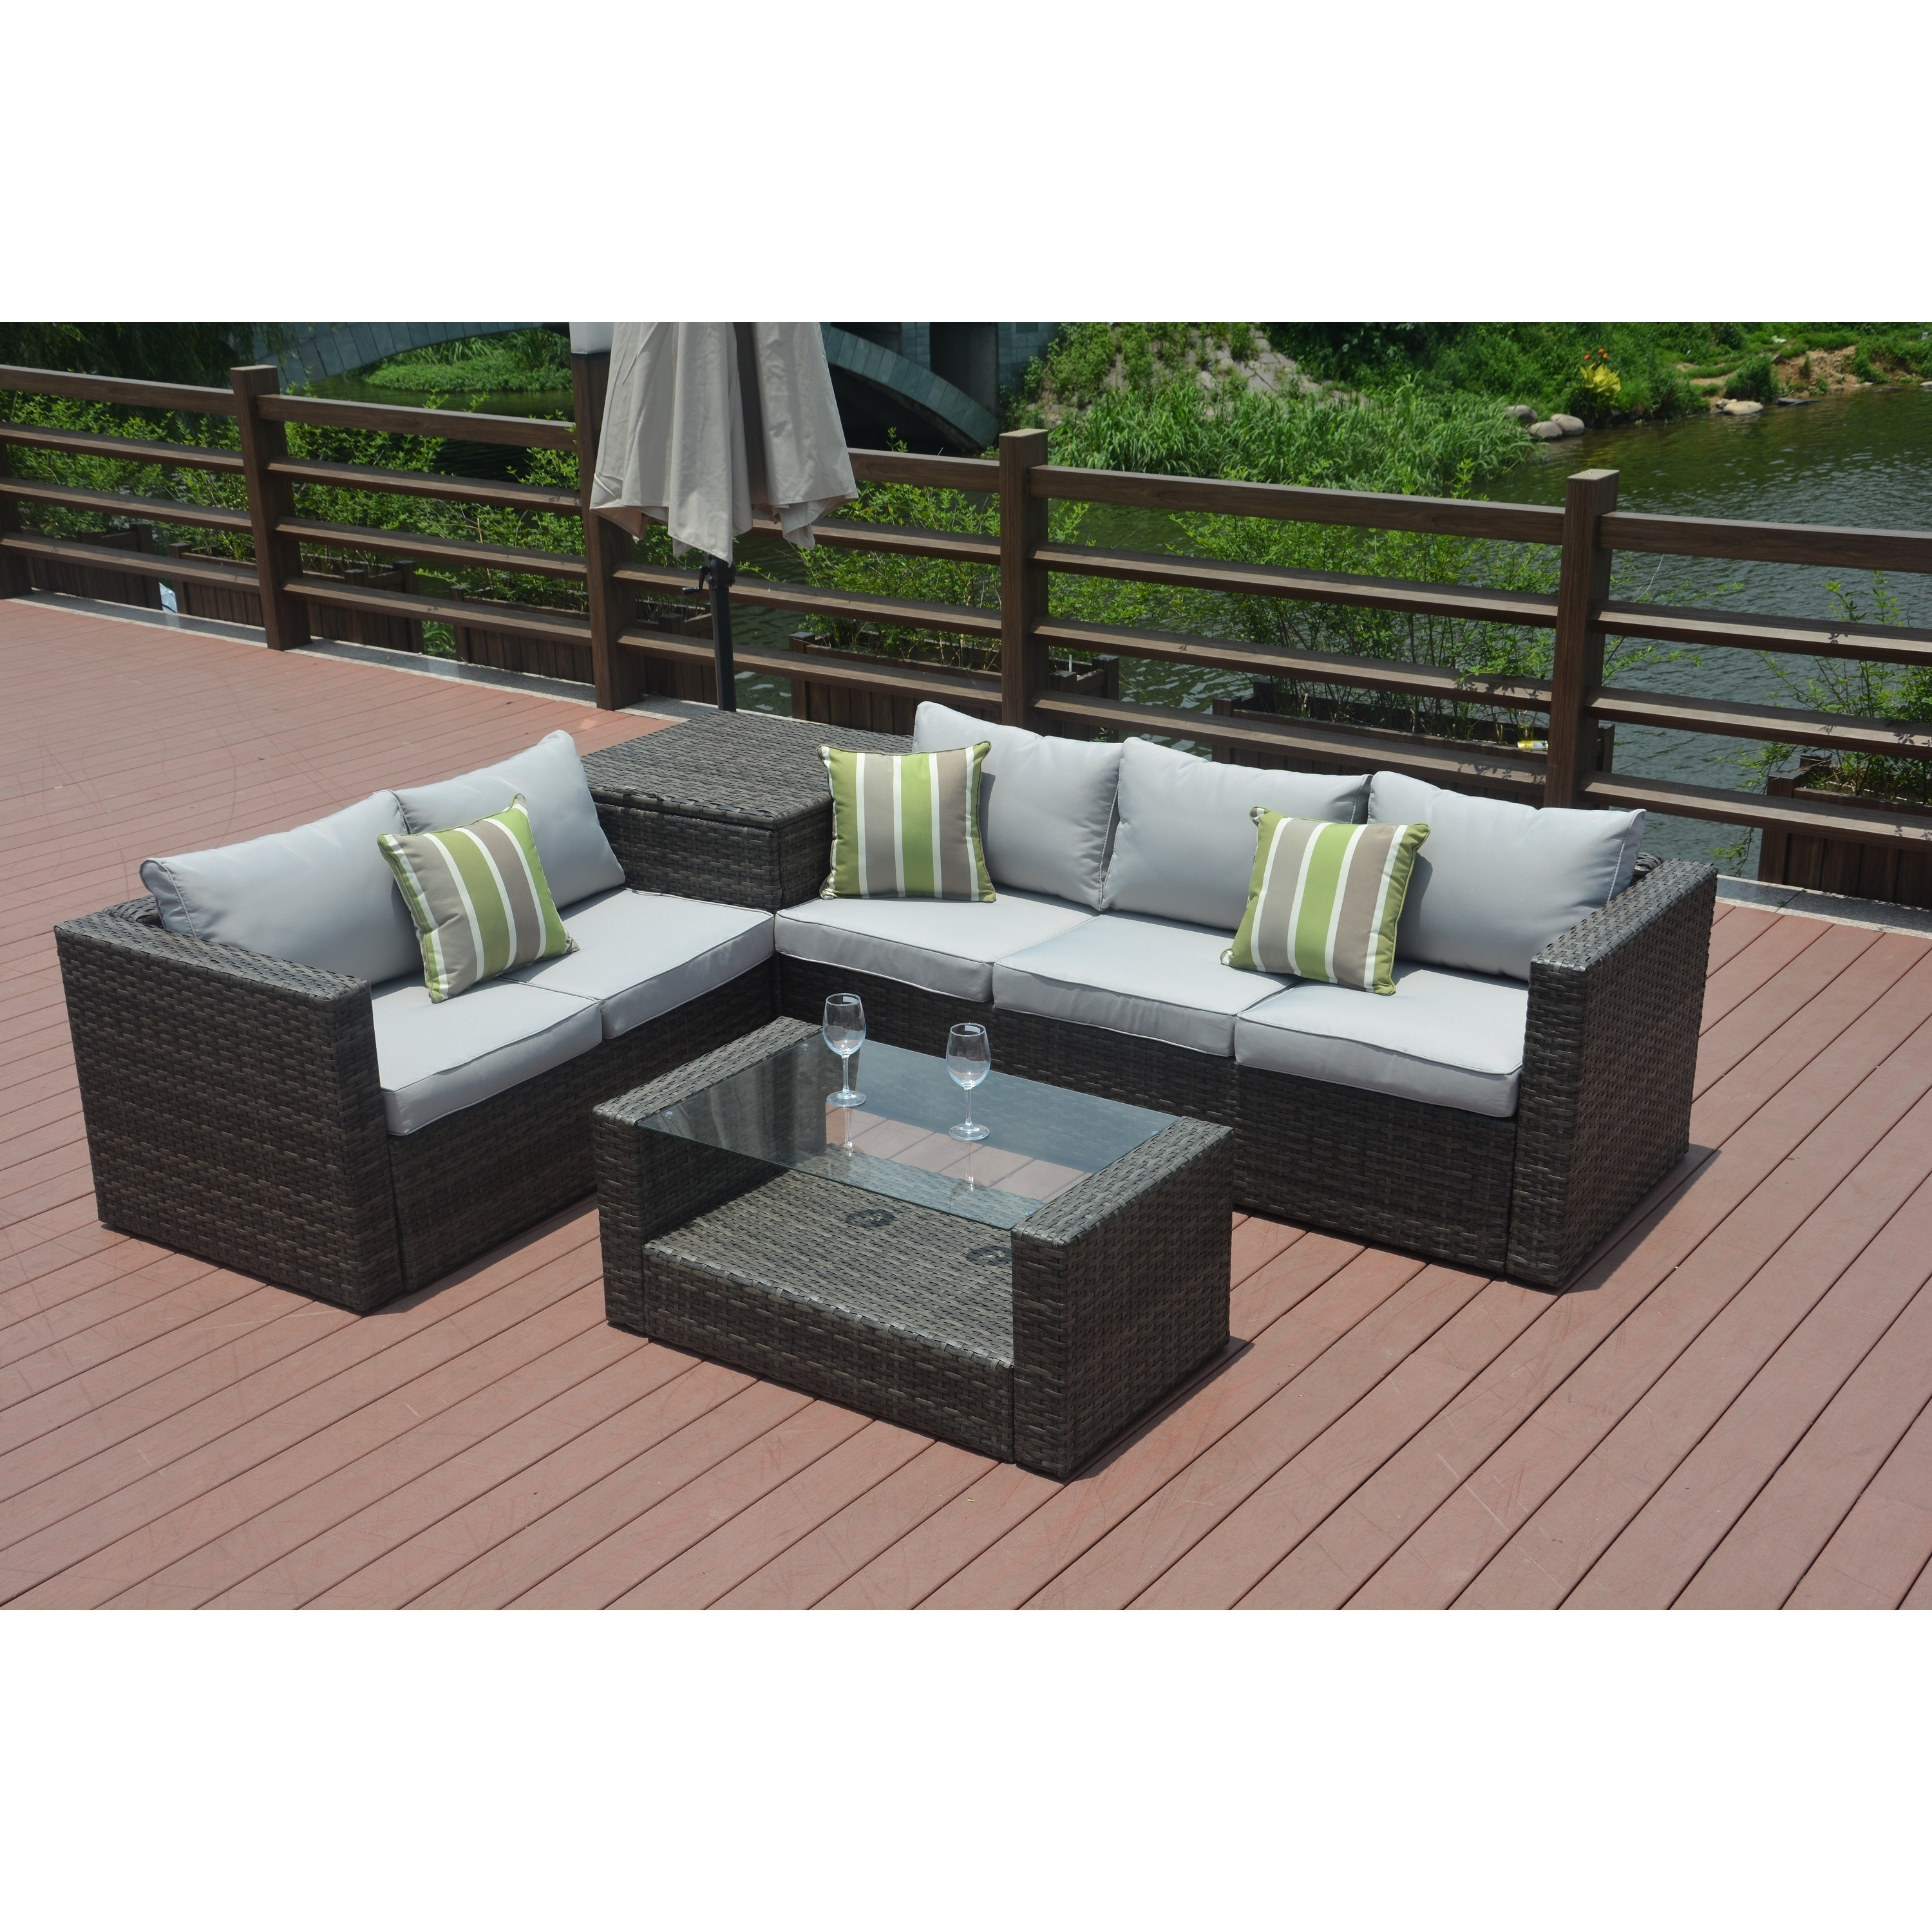 Shop Jasmine 4 Piece Grey Wicker Patio Furniture Set With Cushion Box By  Direct Wicker   Free Shipping Today   Overstock.com   16764475